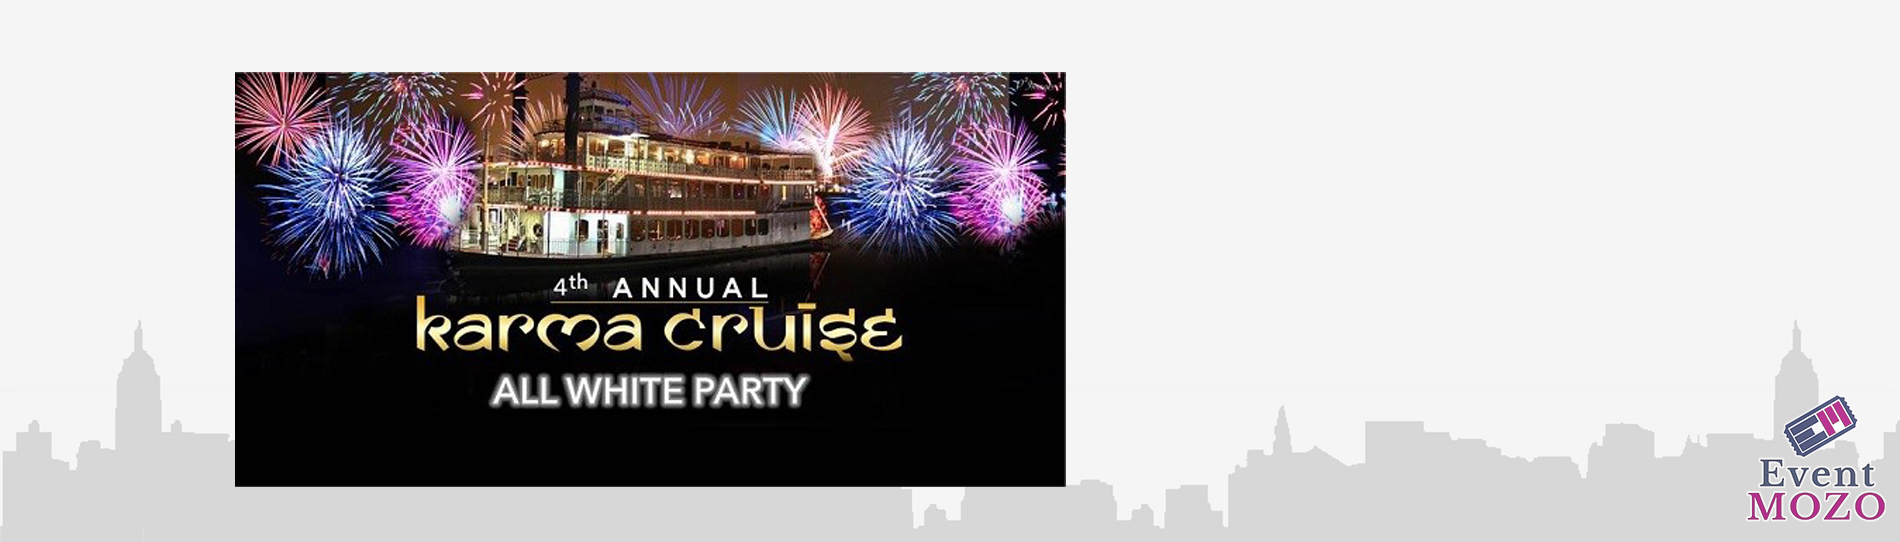 Karma Cruise All White Party 2017 In Grand Romance